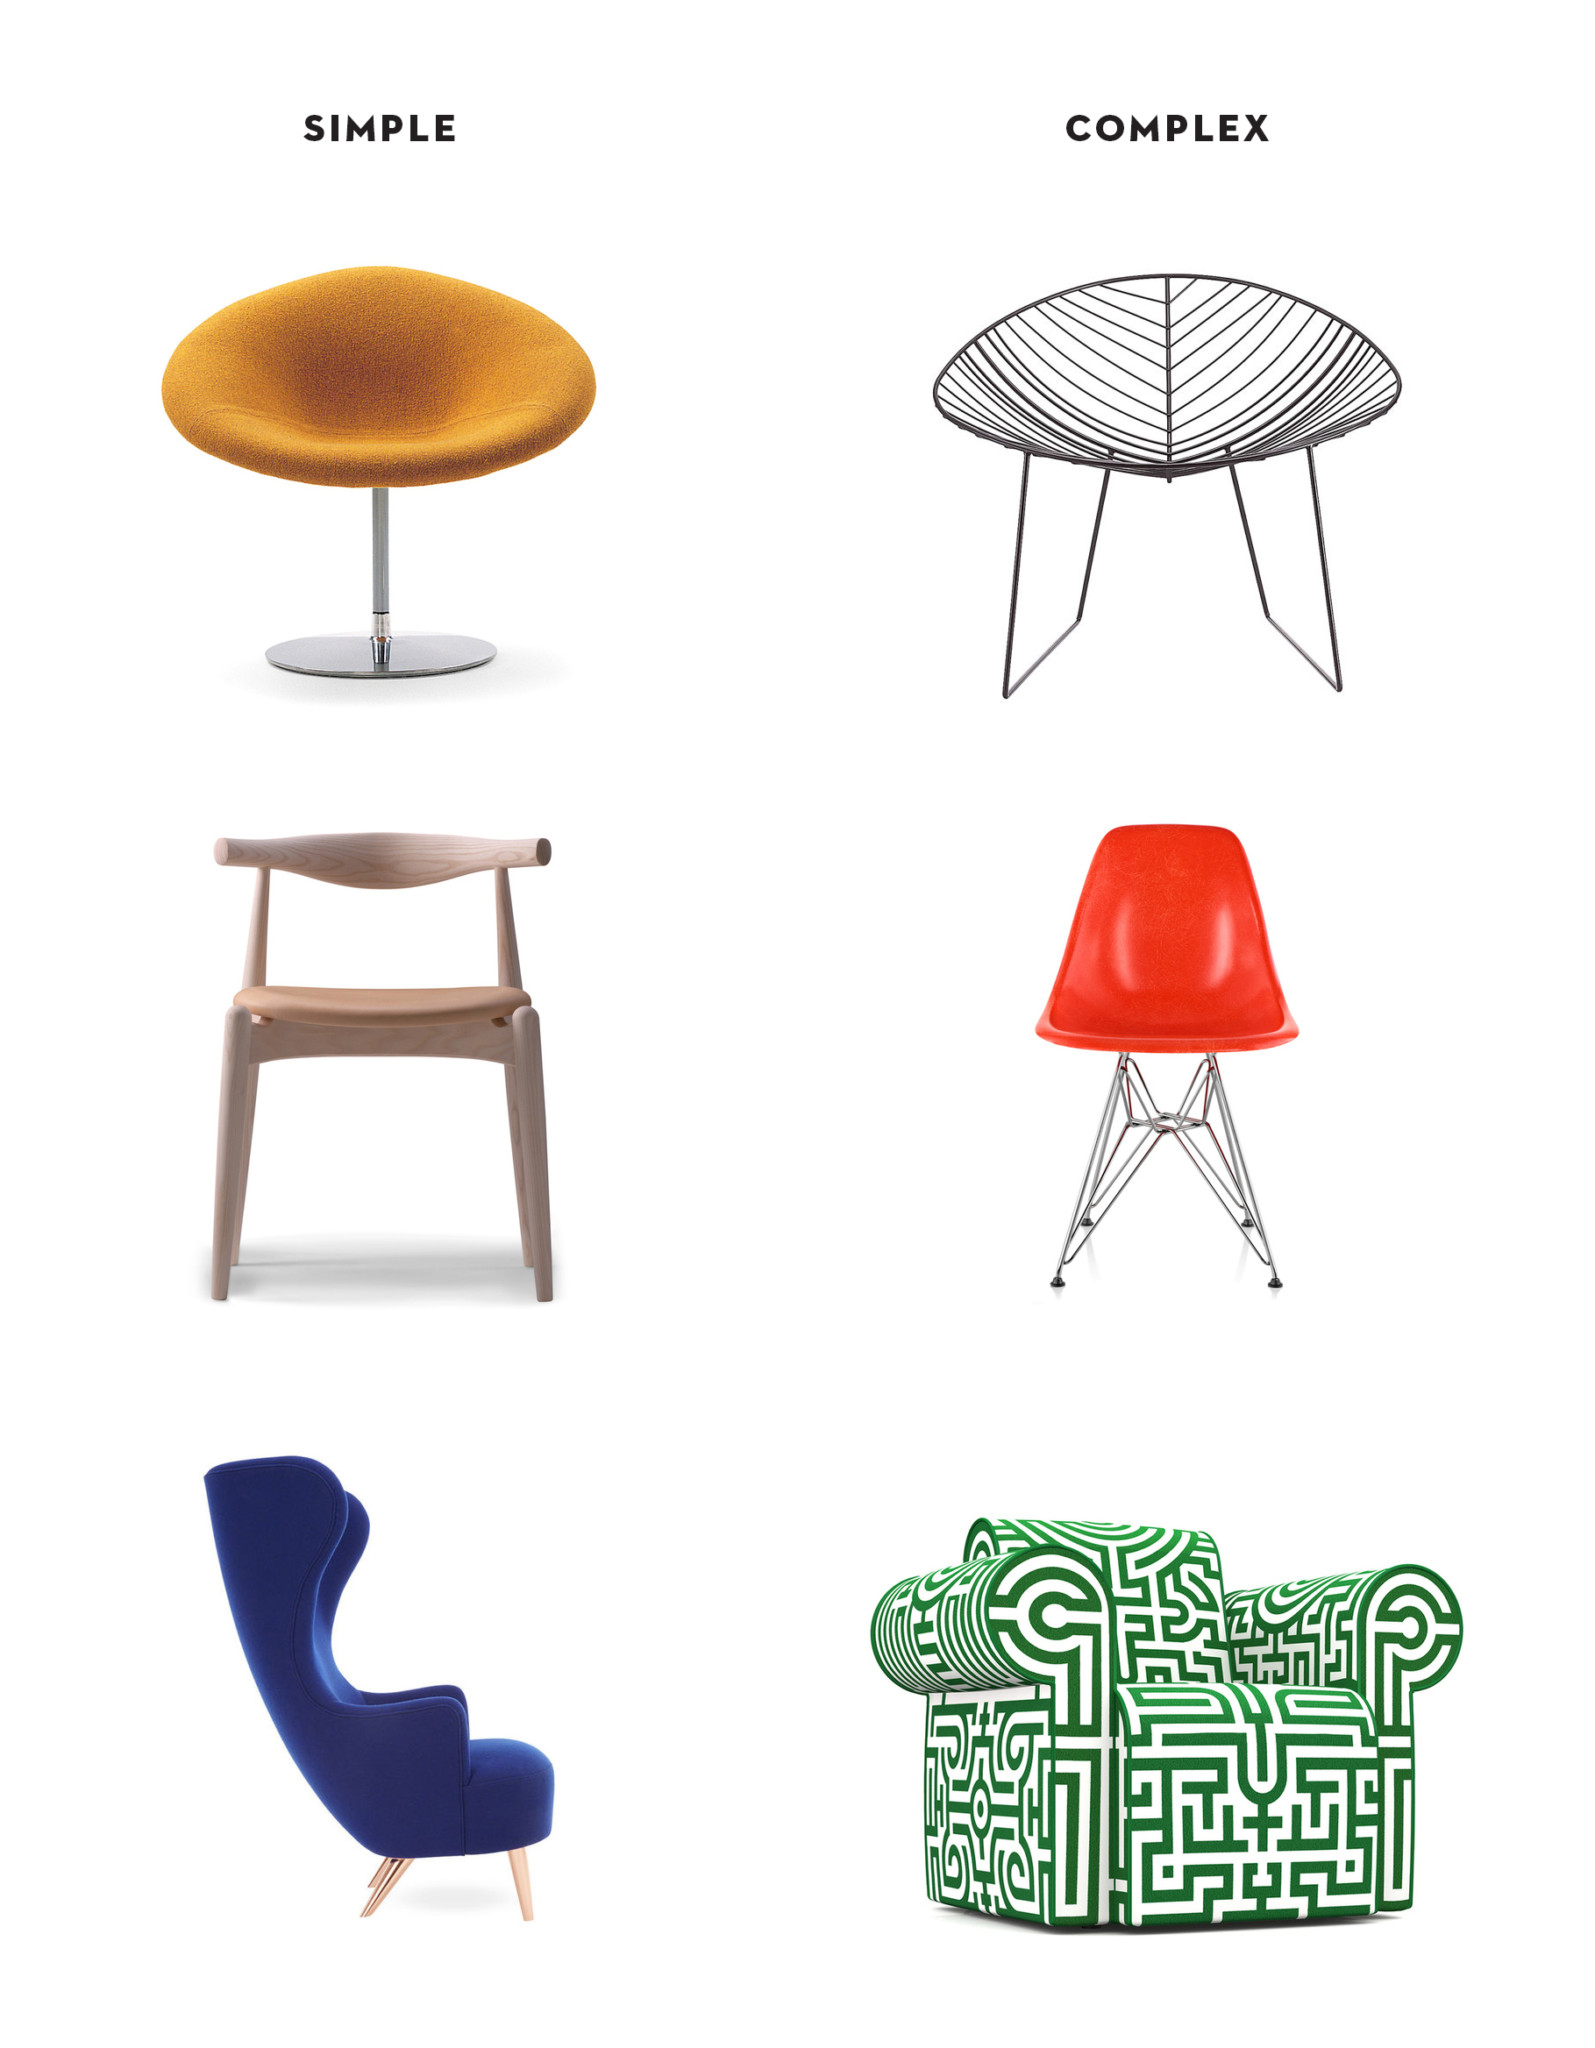 simple chair designs vs. complex chair designs